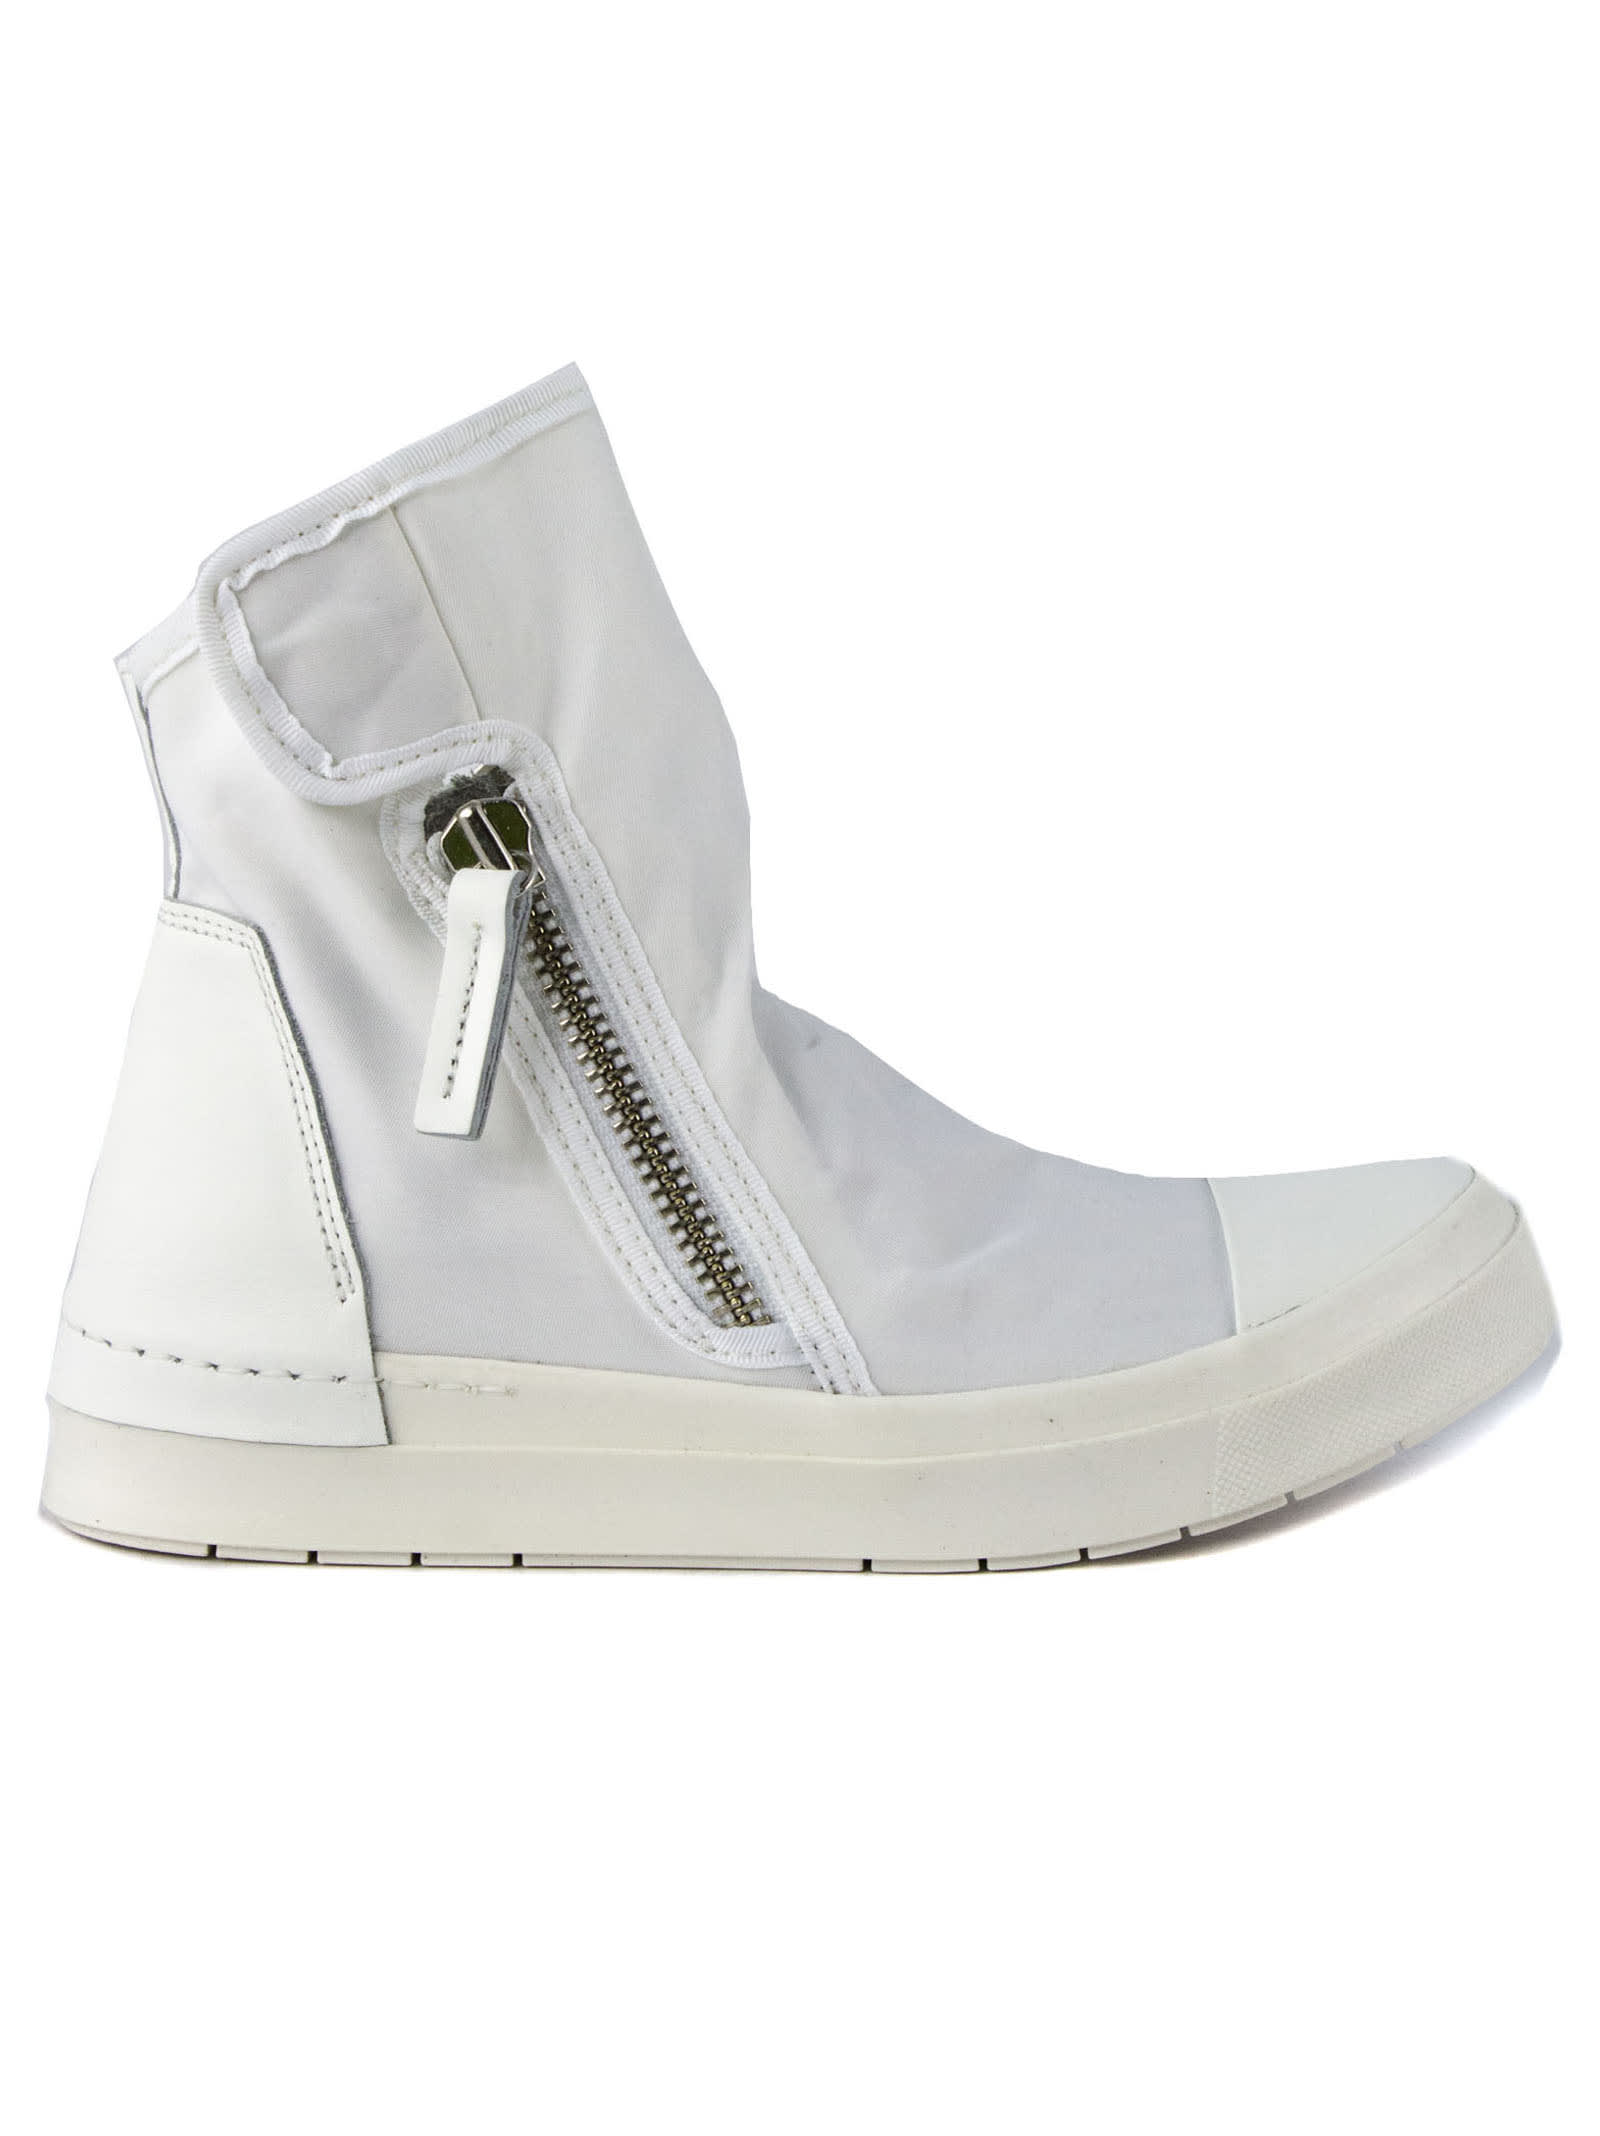 Cinzia Araia High-top Sneaker In White